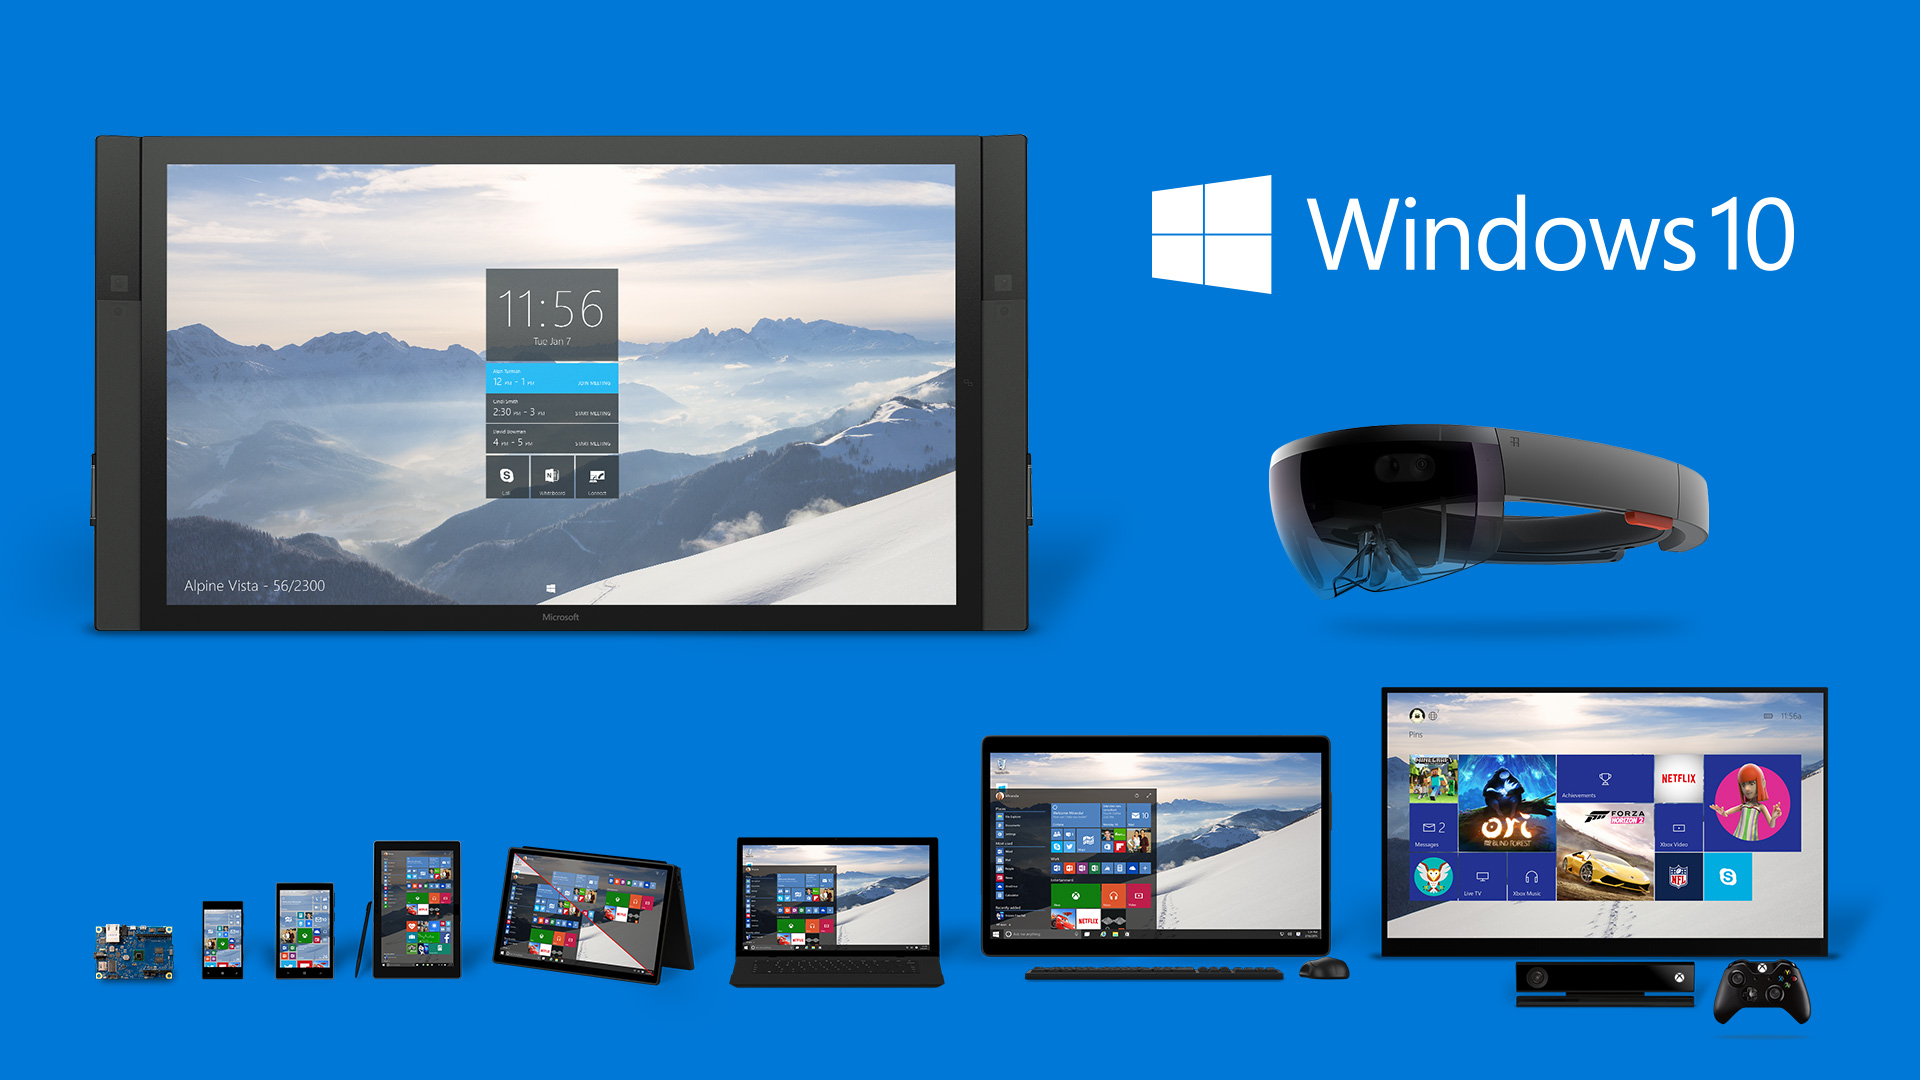 Windows 10 Launch Date Revealed - Windows 10 Cross Platform